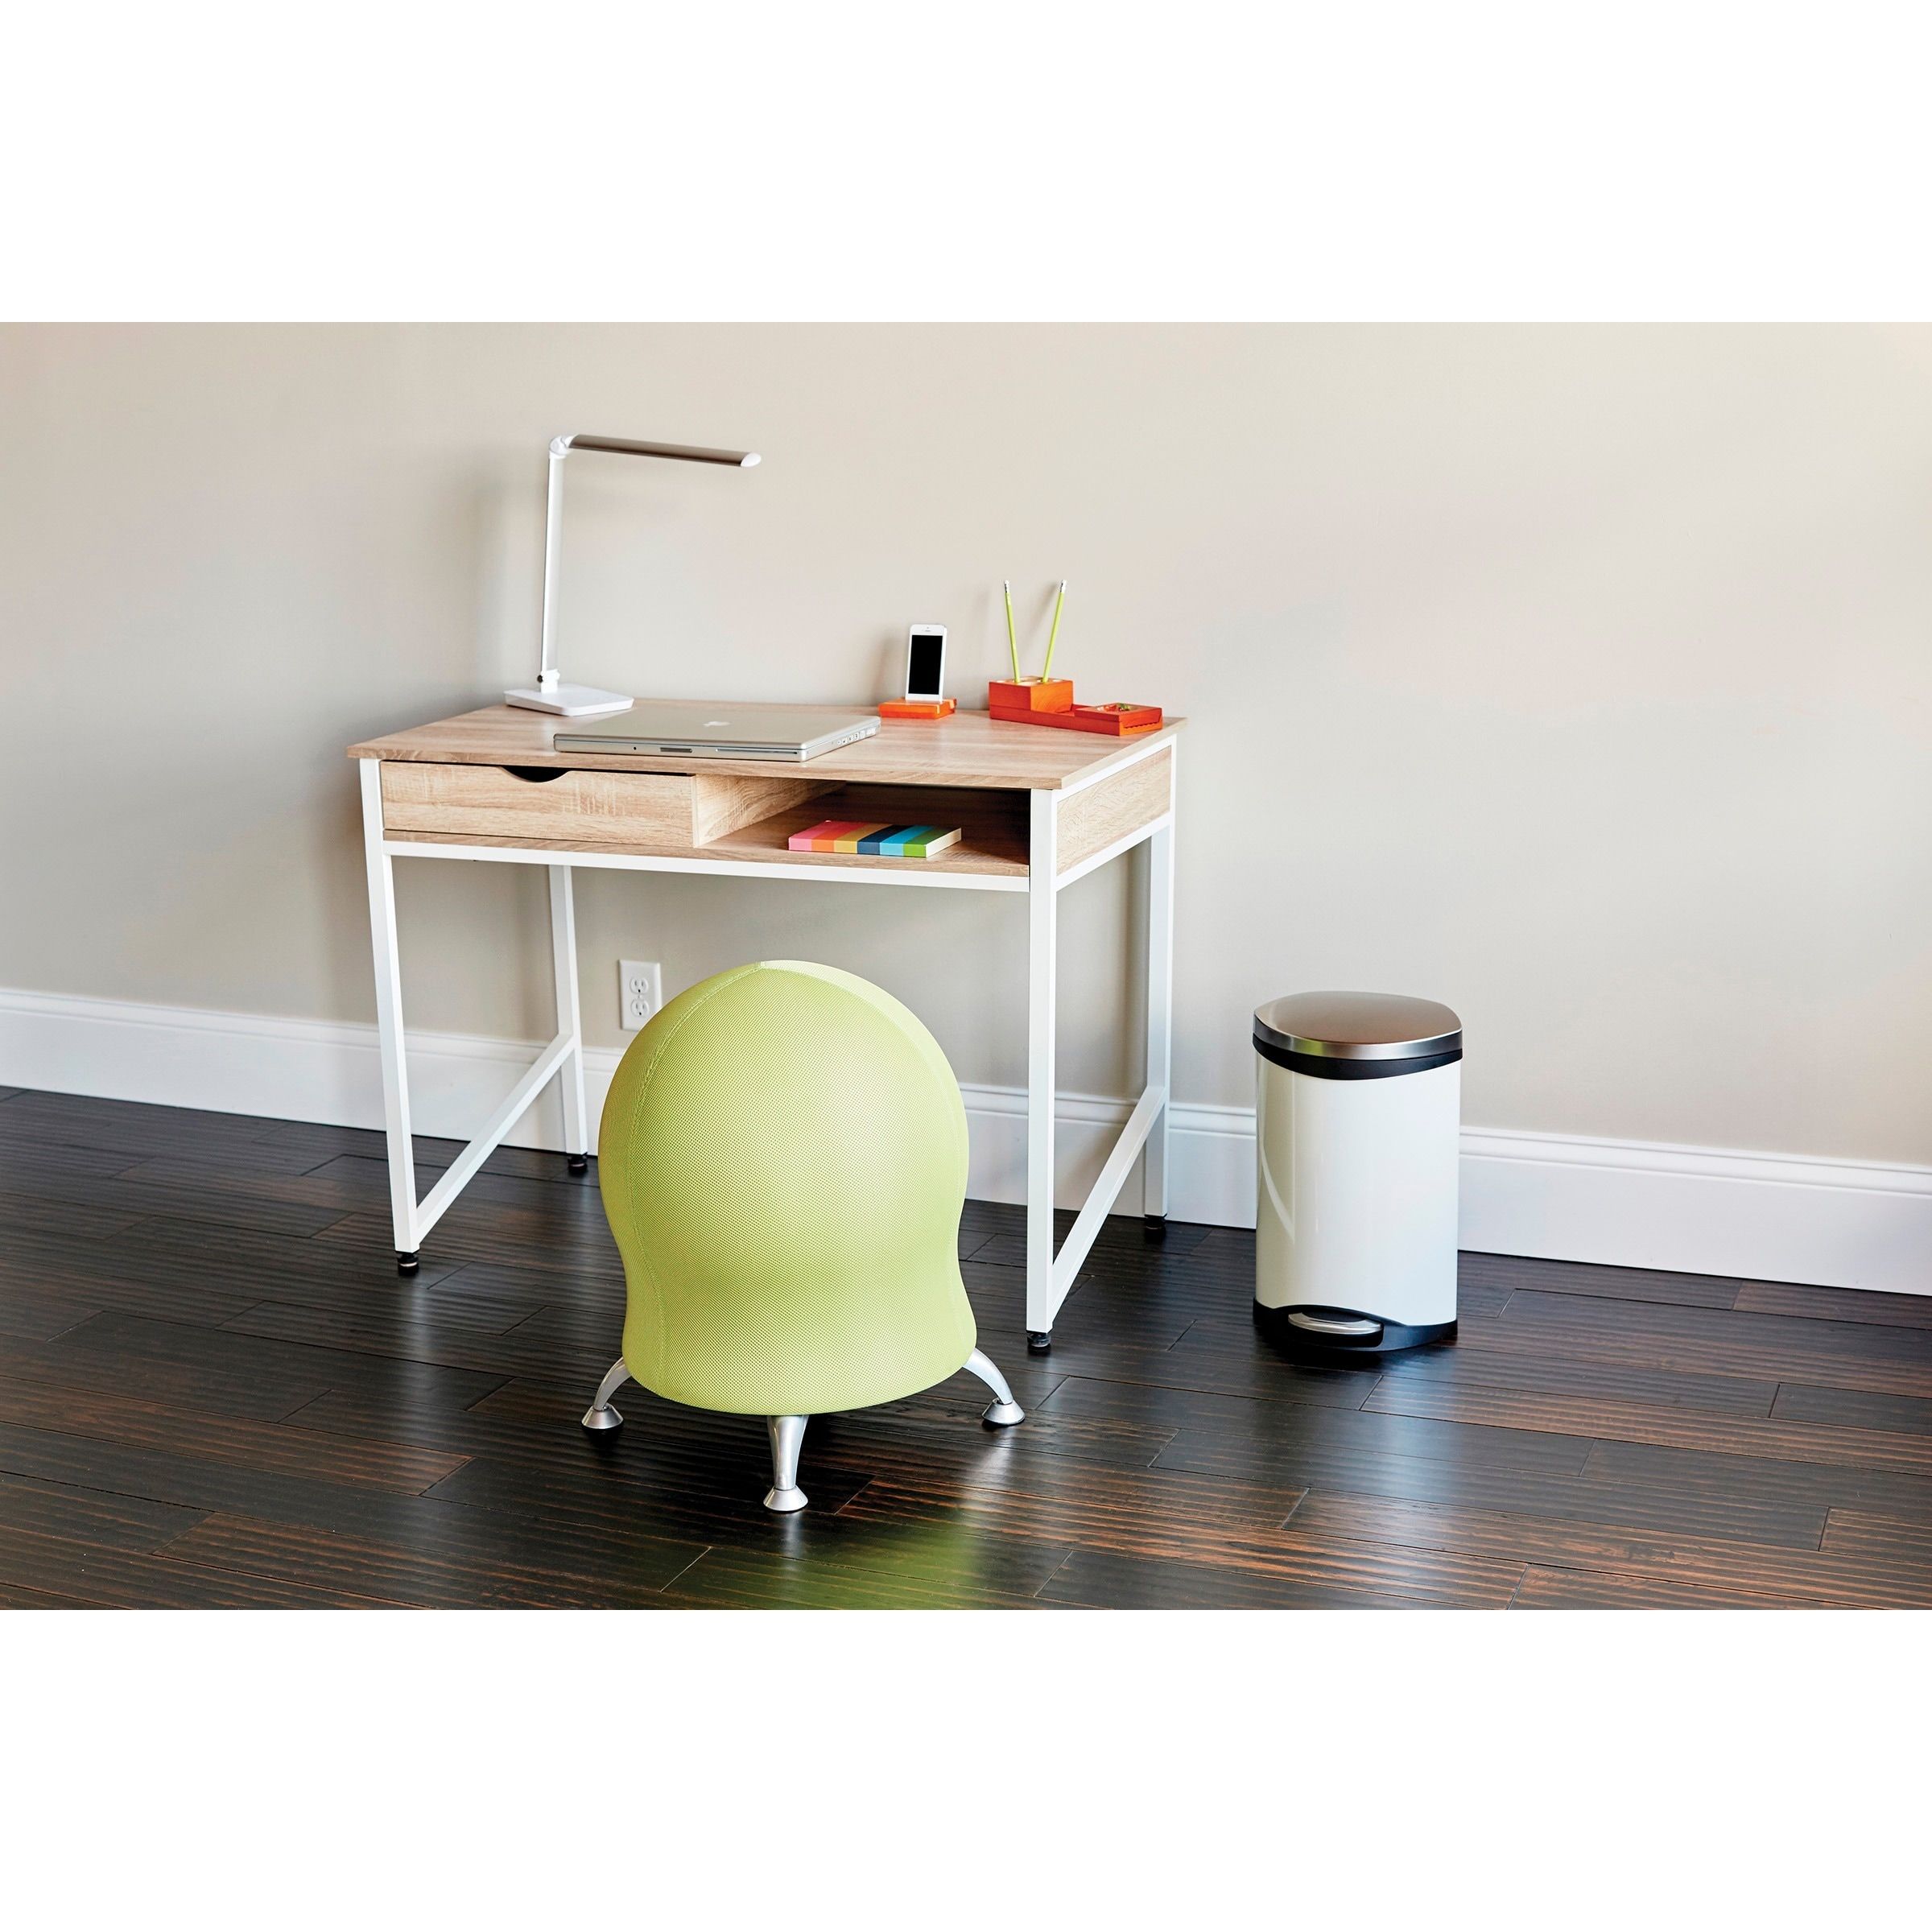 safco energy ball chair overview of the zenergy ball chair by safco